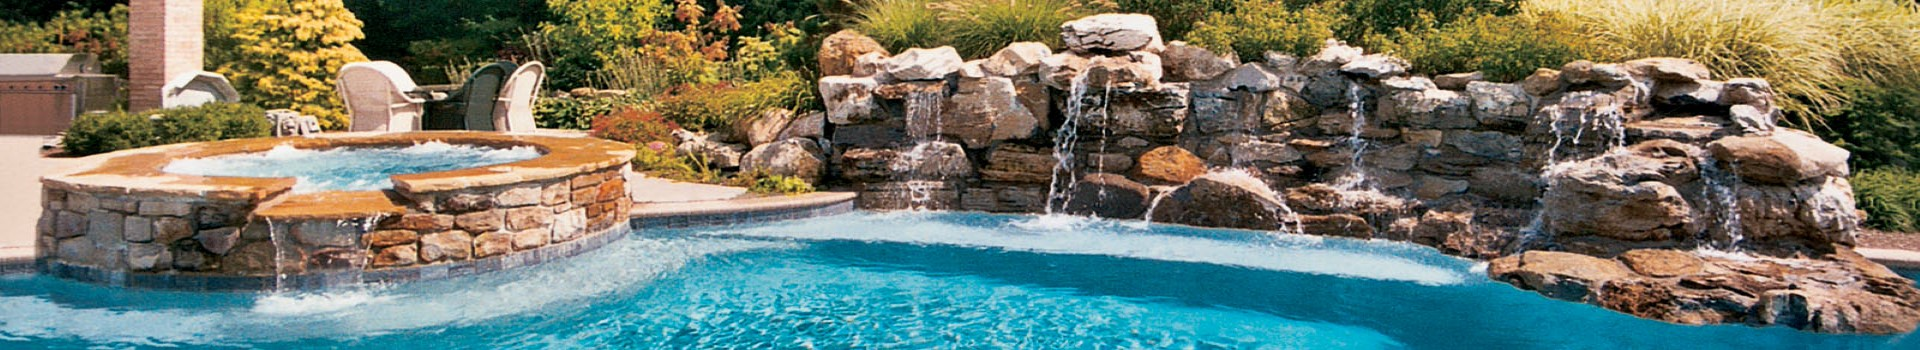 1920x350_philadelphia-inground-pool-w-spa-and-rock-waterfall_main-smart-features